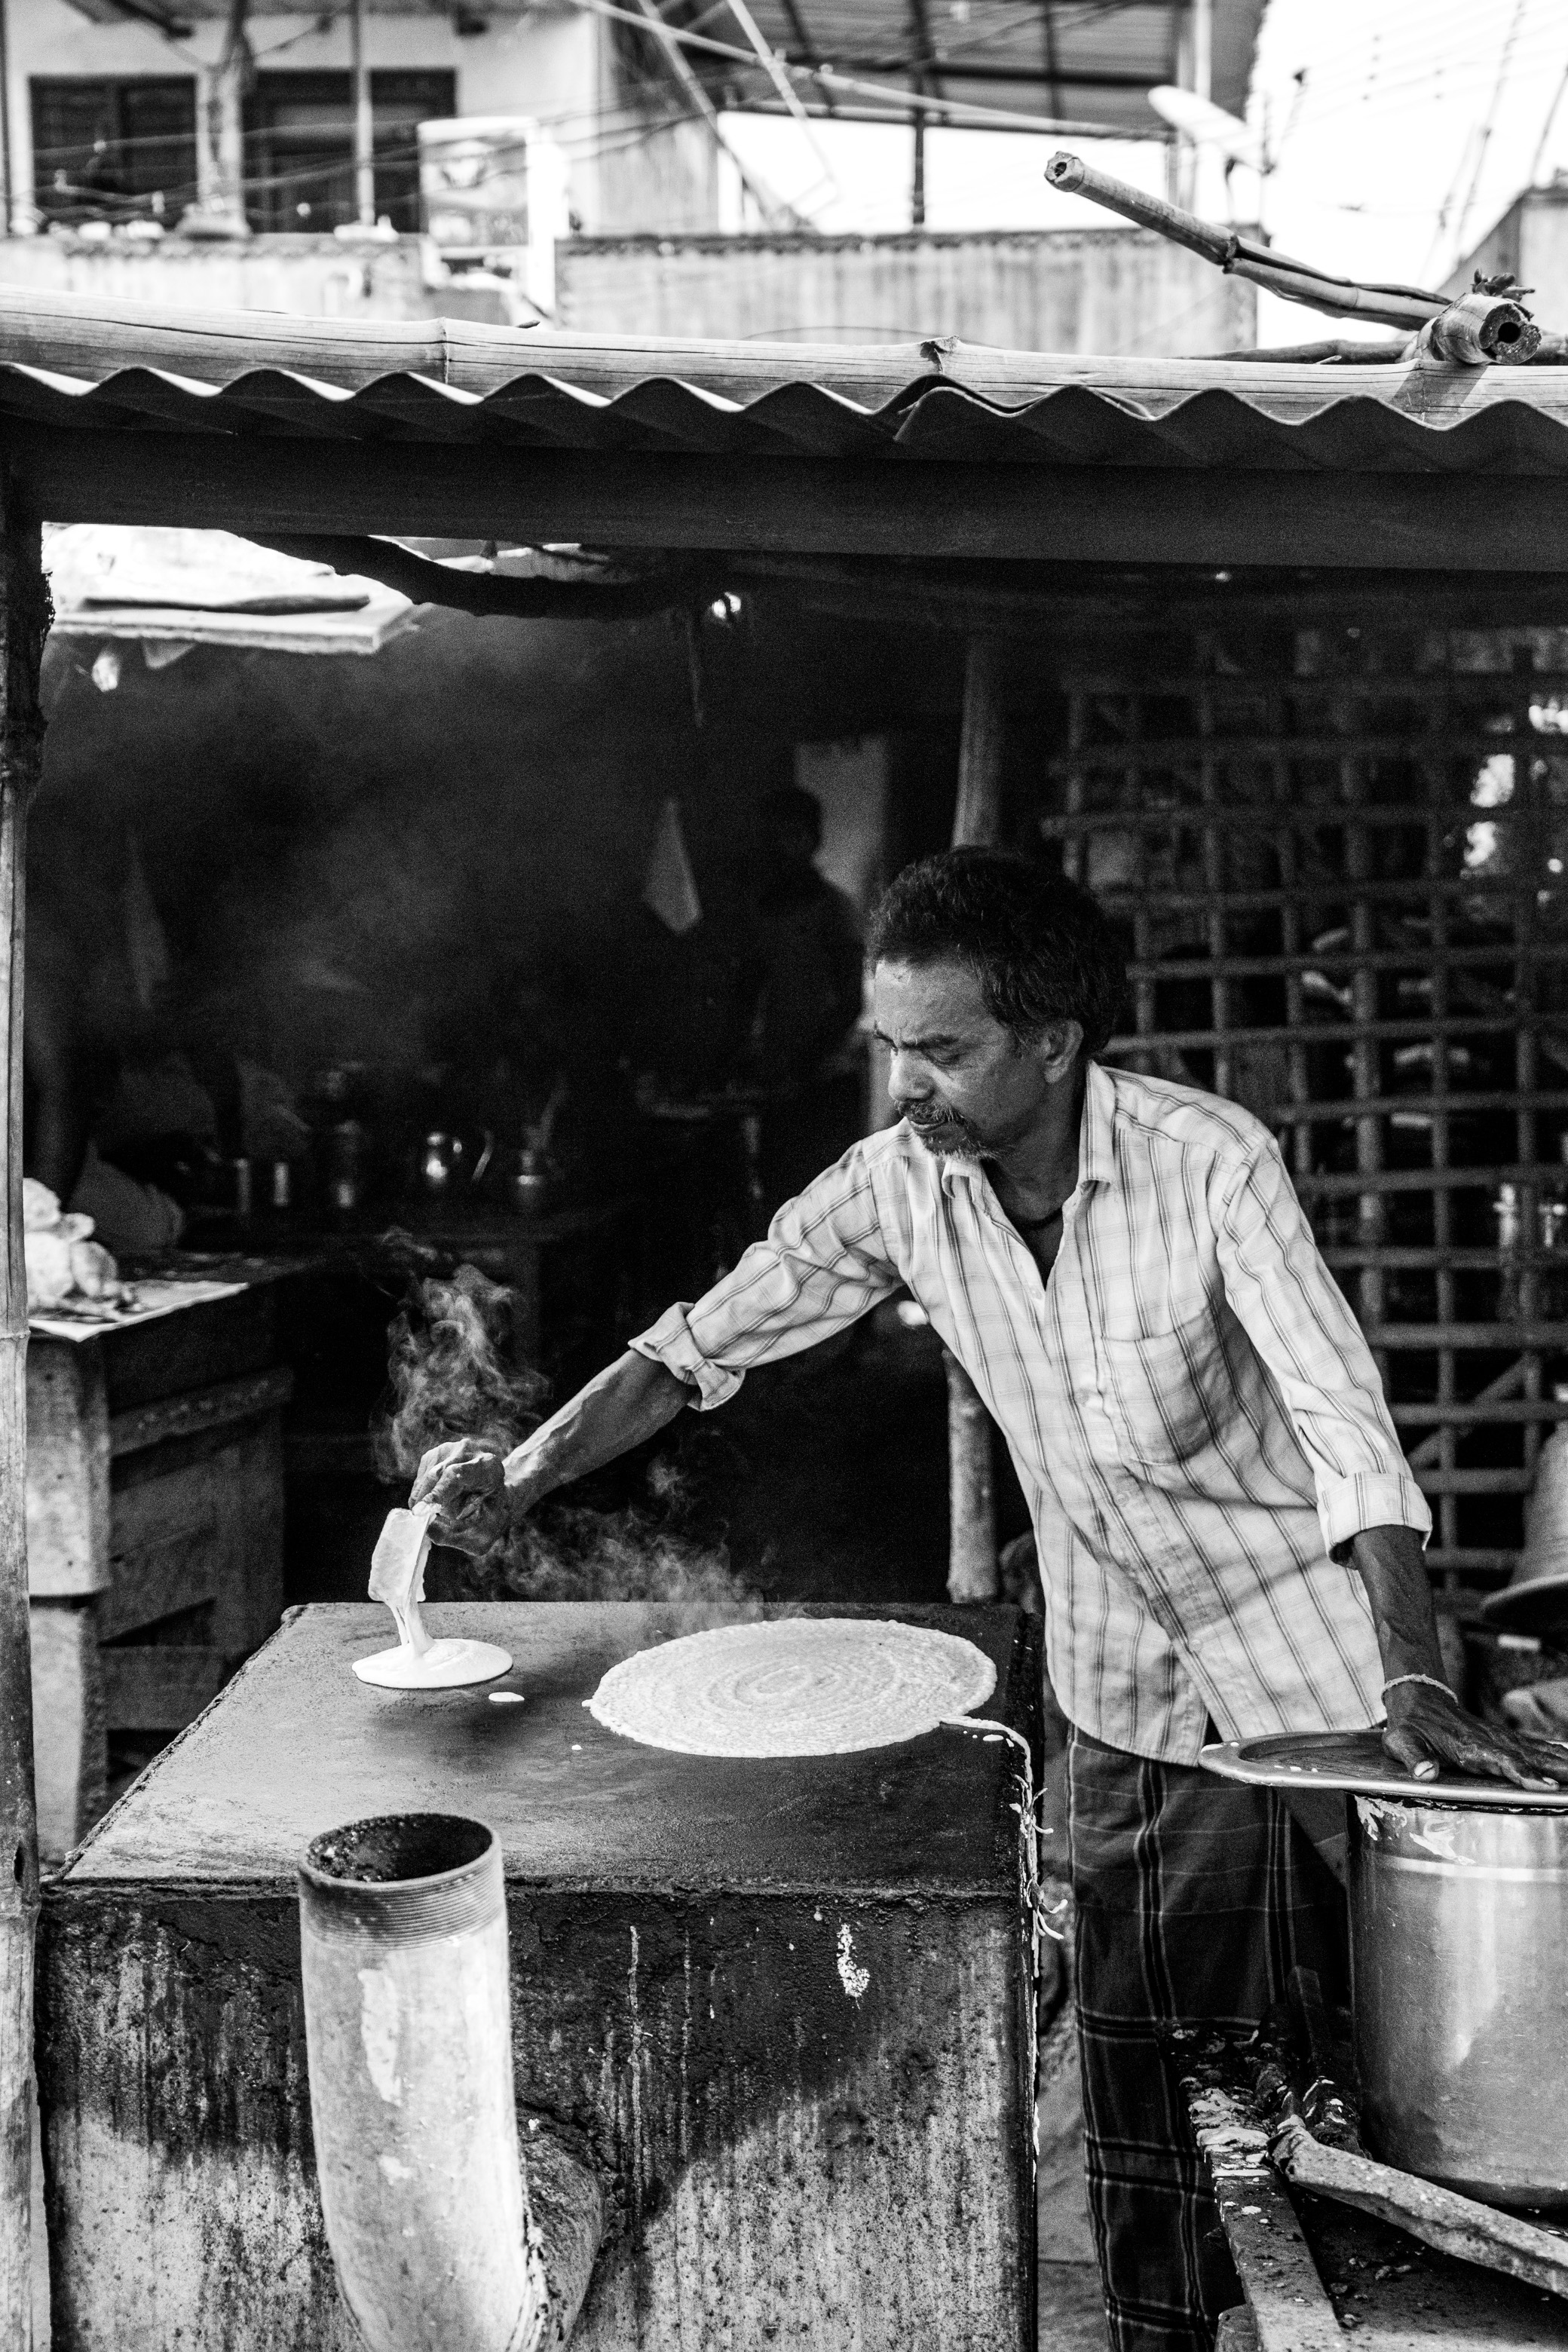 Making Dosa, Black and White